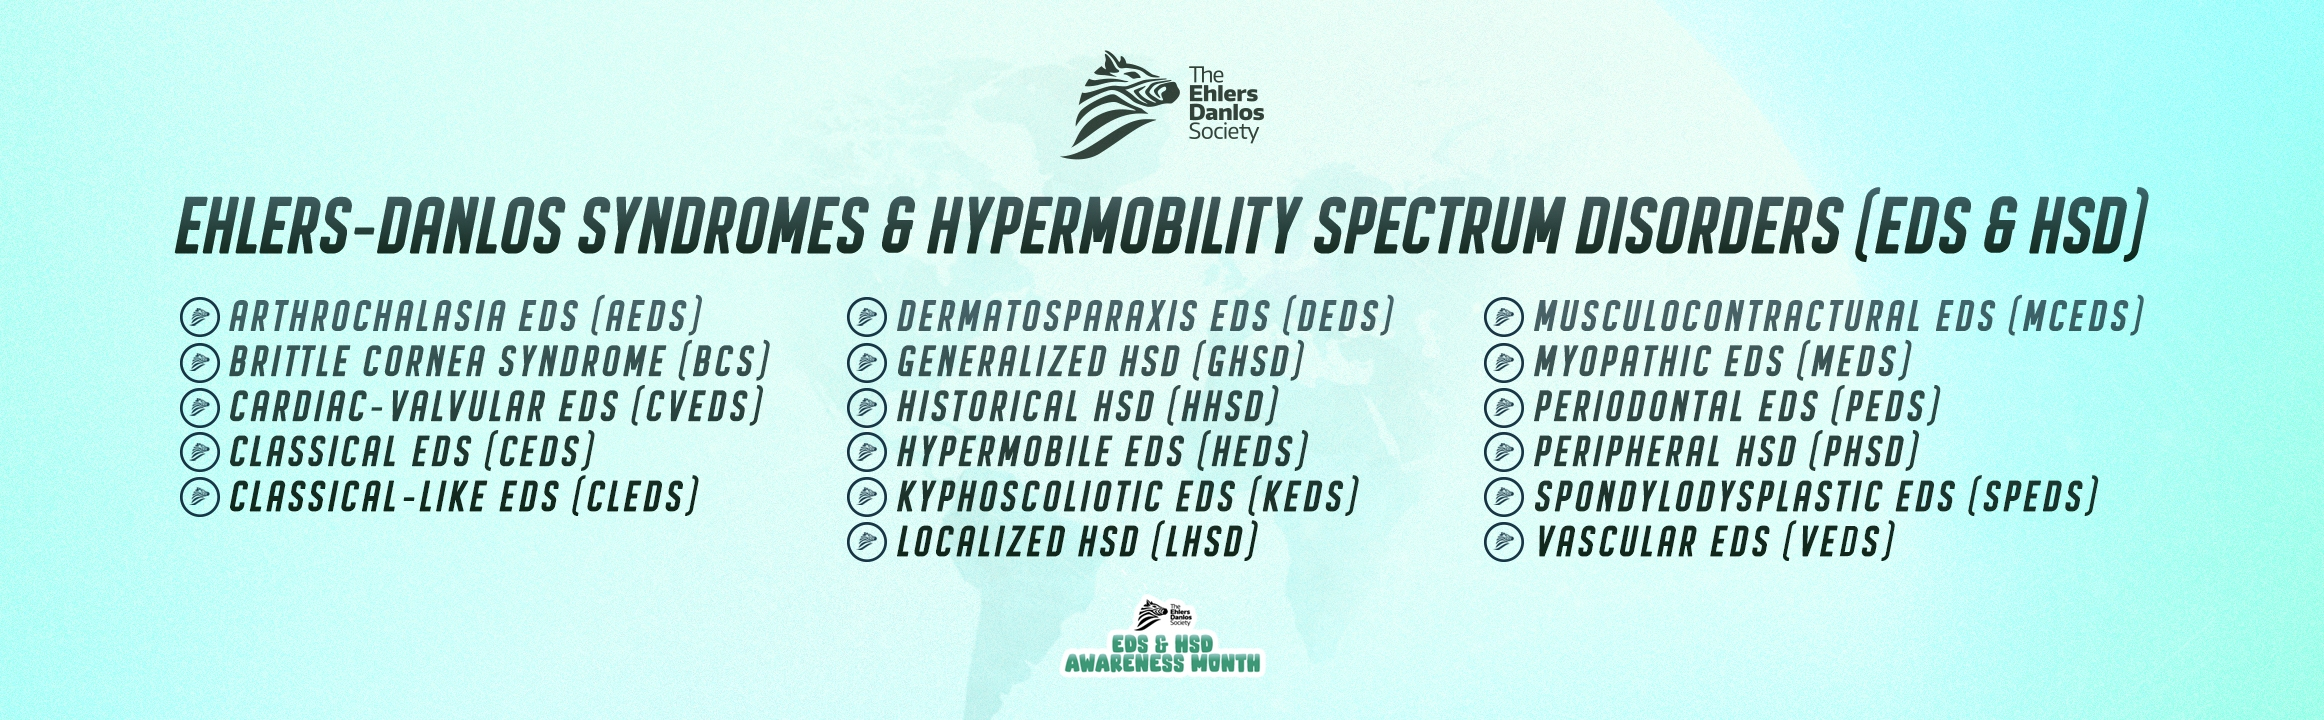 The Ehlers-Danlos Syndromes and Hypermobility spectrum disorders